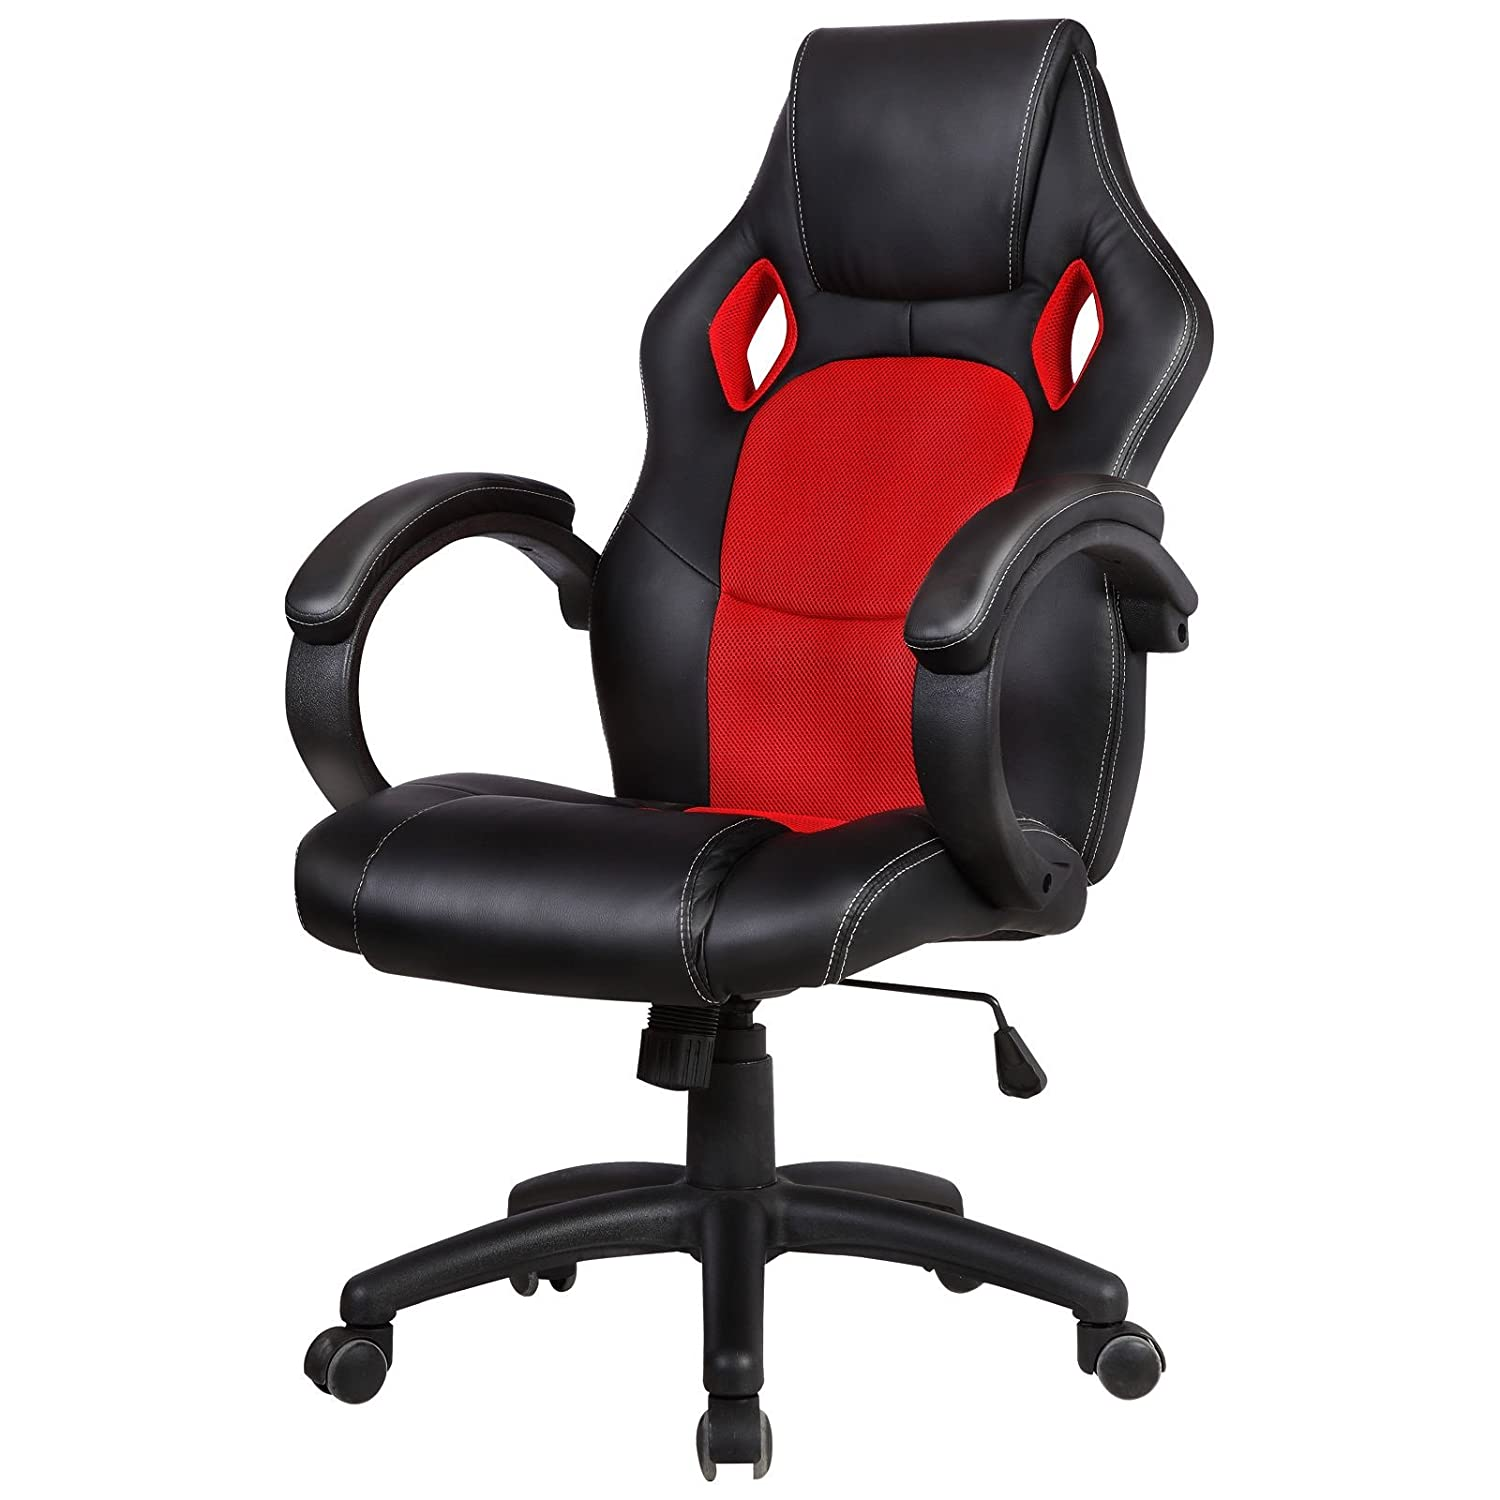 Gaming Chair High Back Computer Office Chair Swivel Racing Chair Black & Red Mobi Office